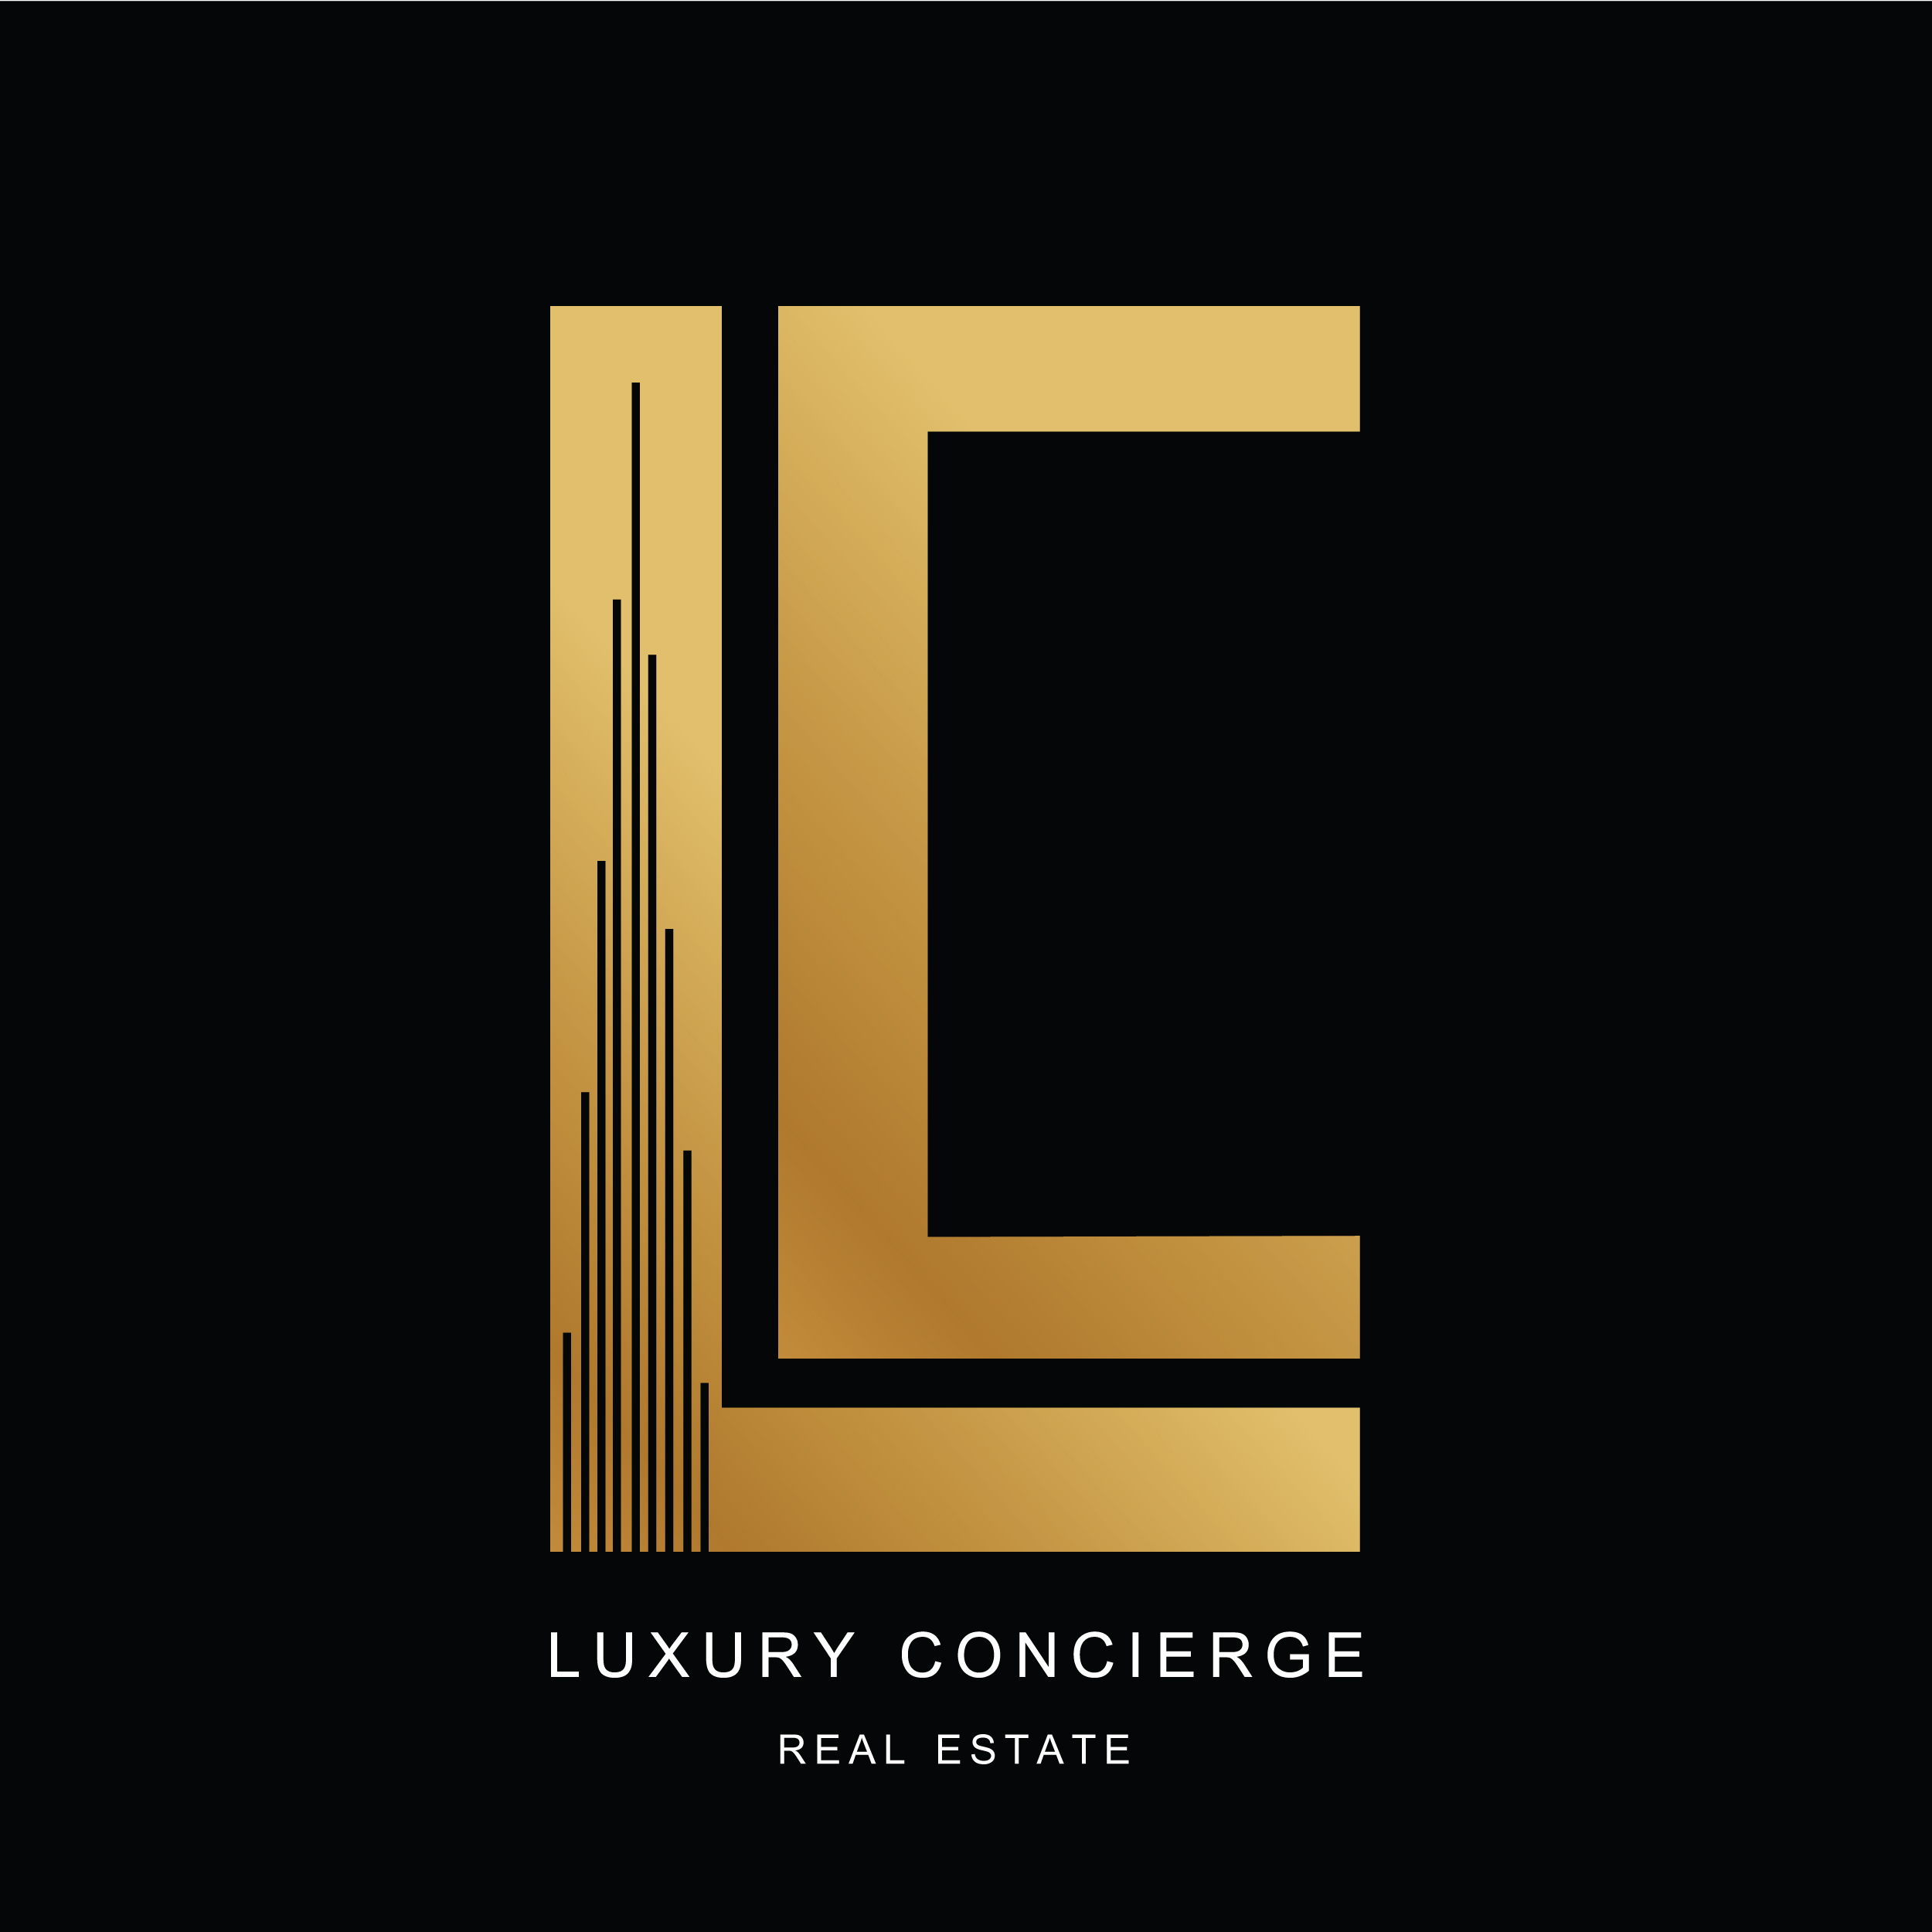 Luxury Concierge Real estate